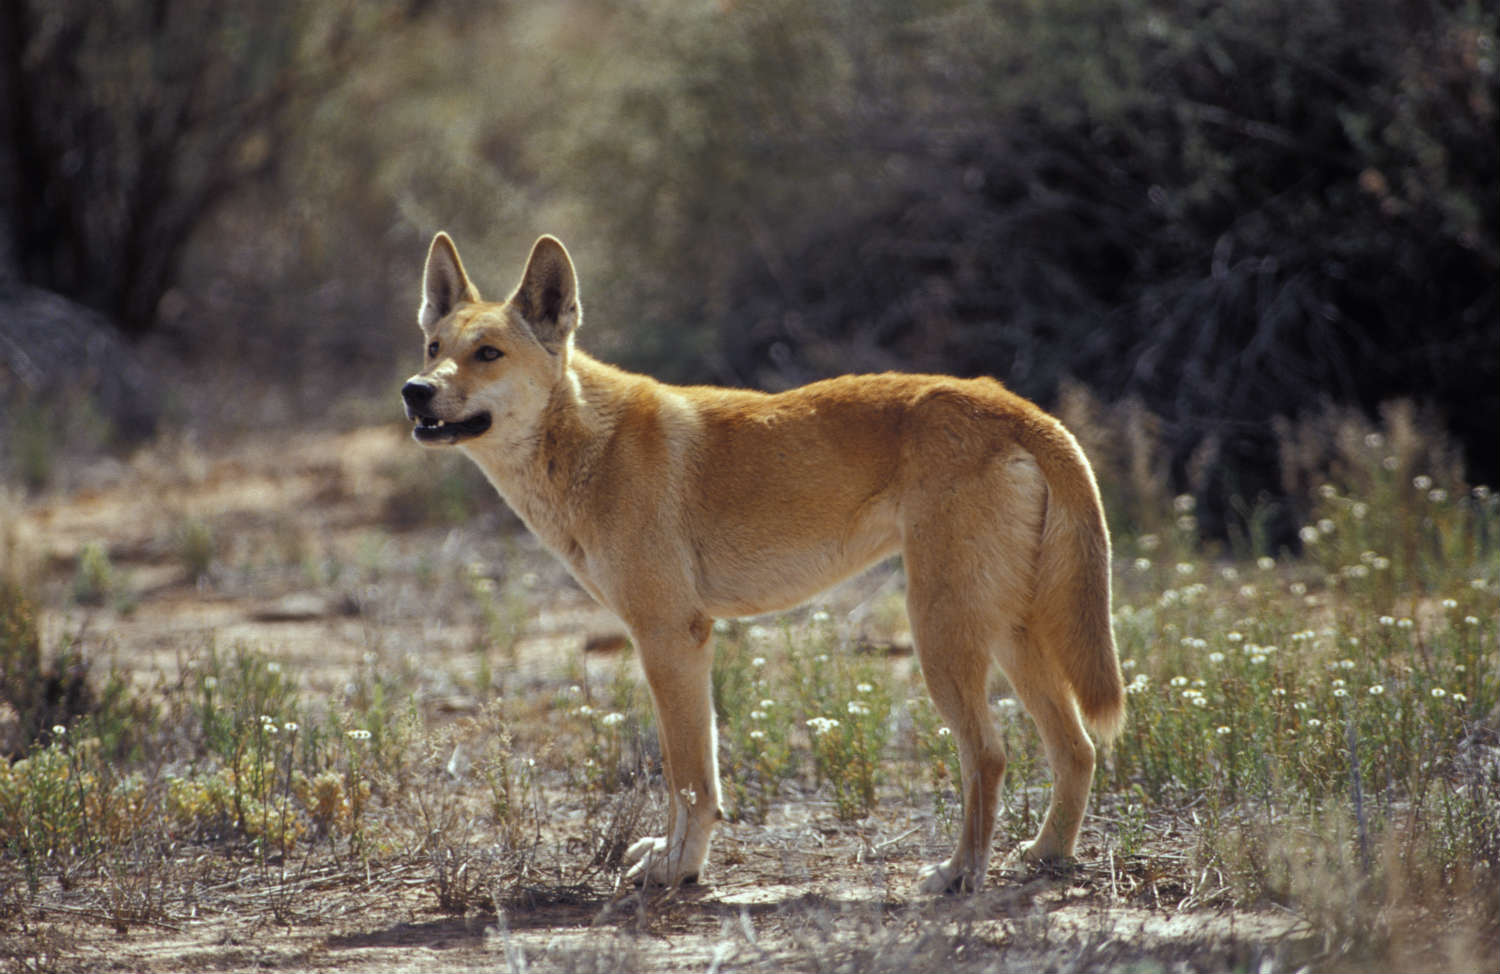 Dingoes are blamed for hunting the Tasmanian tiger to extinction. But humans bear the blame